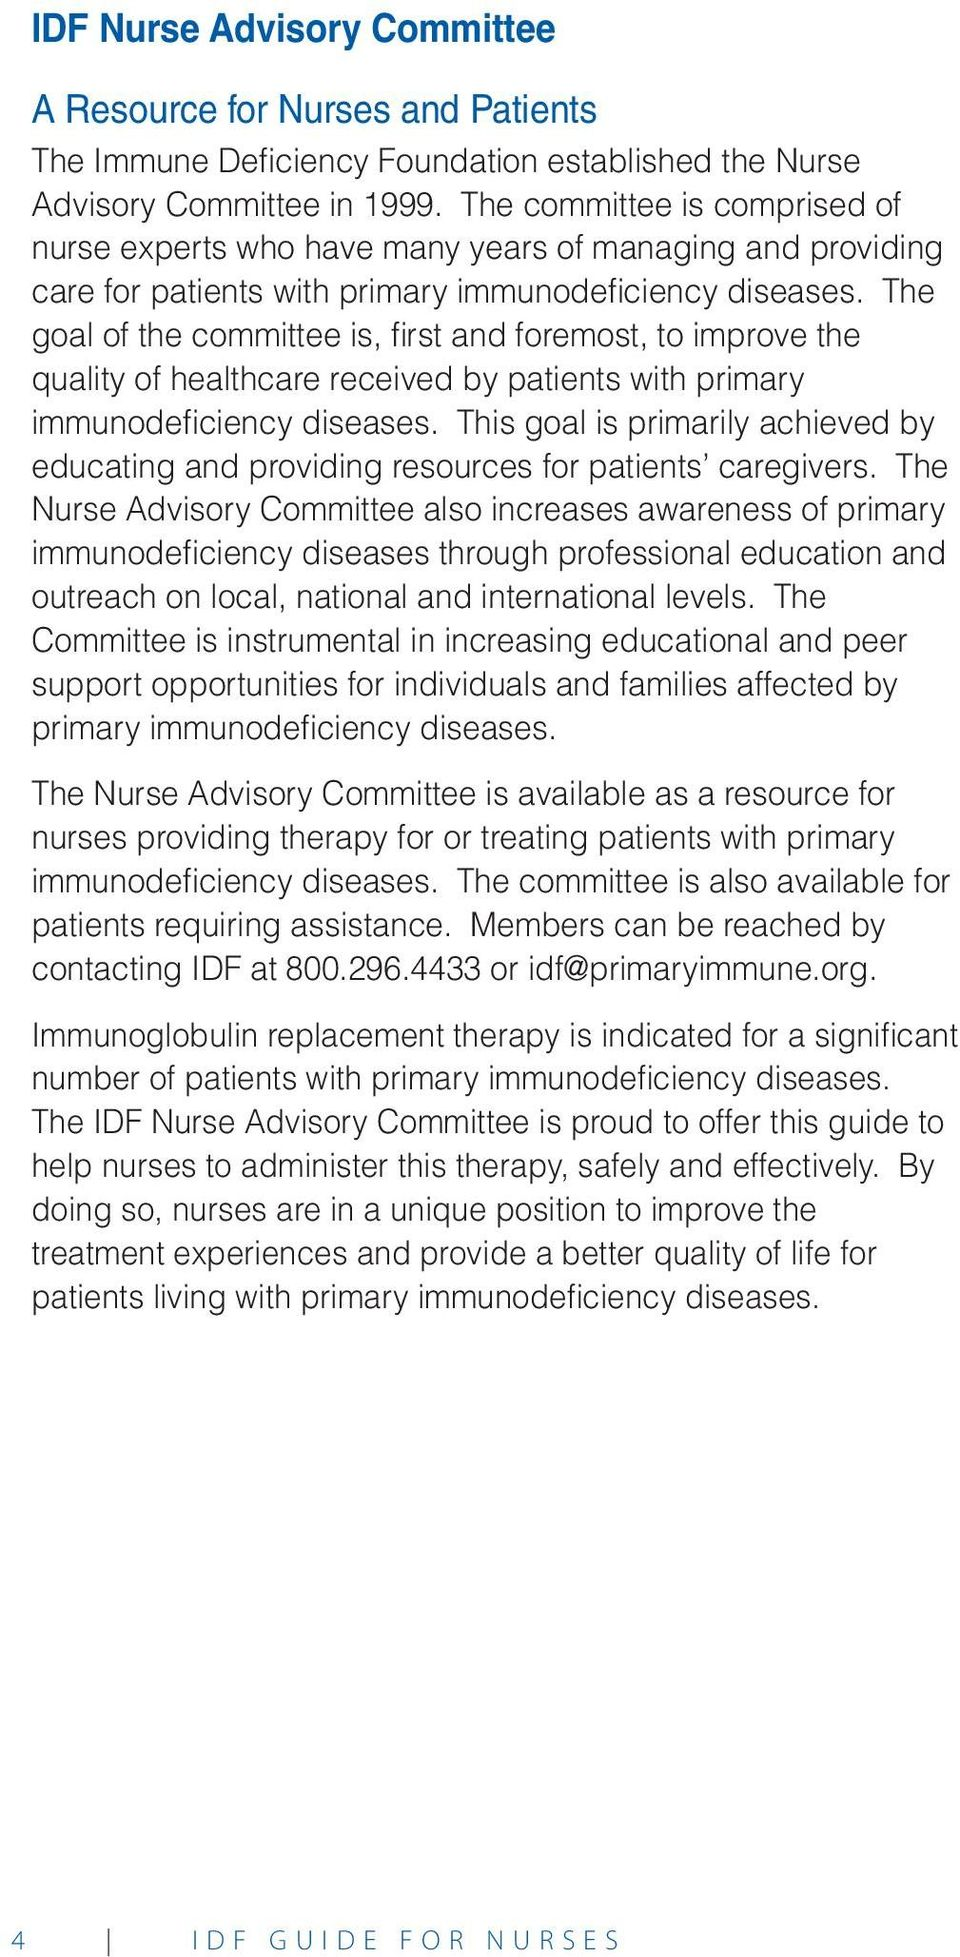 The goal of the committee is, first and foremost, to improve the quality of healthcare received by patients with primary immunodeficiency diseases.